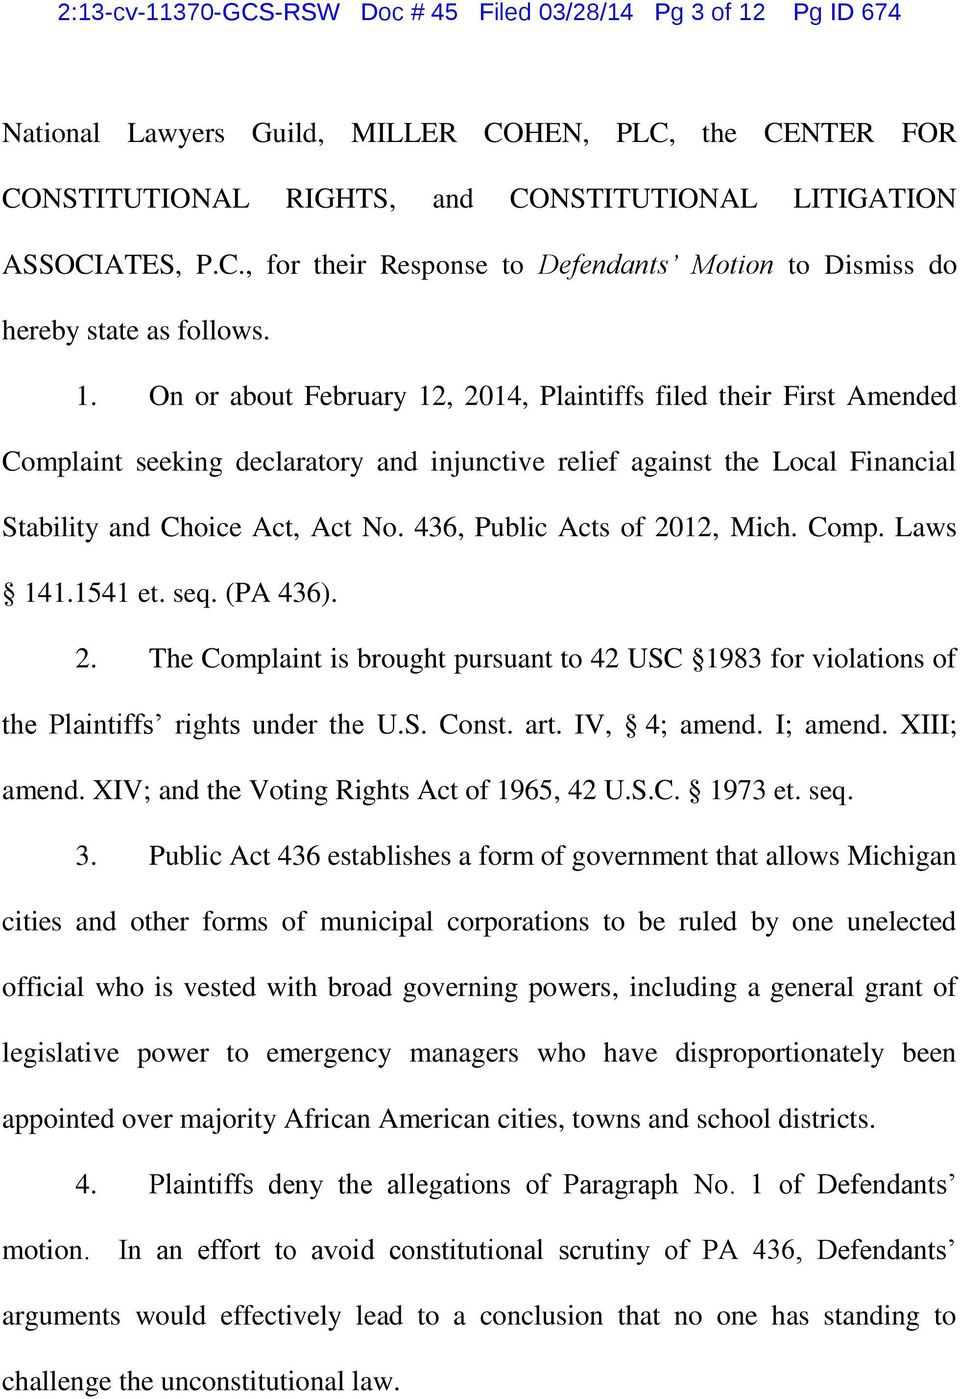 436, Public Acts of 2012, Mich. Comp. Laws 141.1541 et. seq. (PA 436). 2. The Complaint is brought pursuant to 42 USC 1983 for violations of the Plaintiffs rights under the U.S. Const. art.